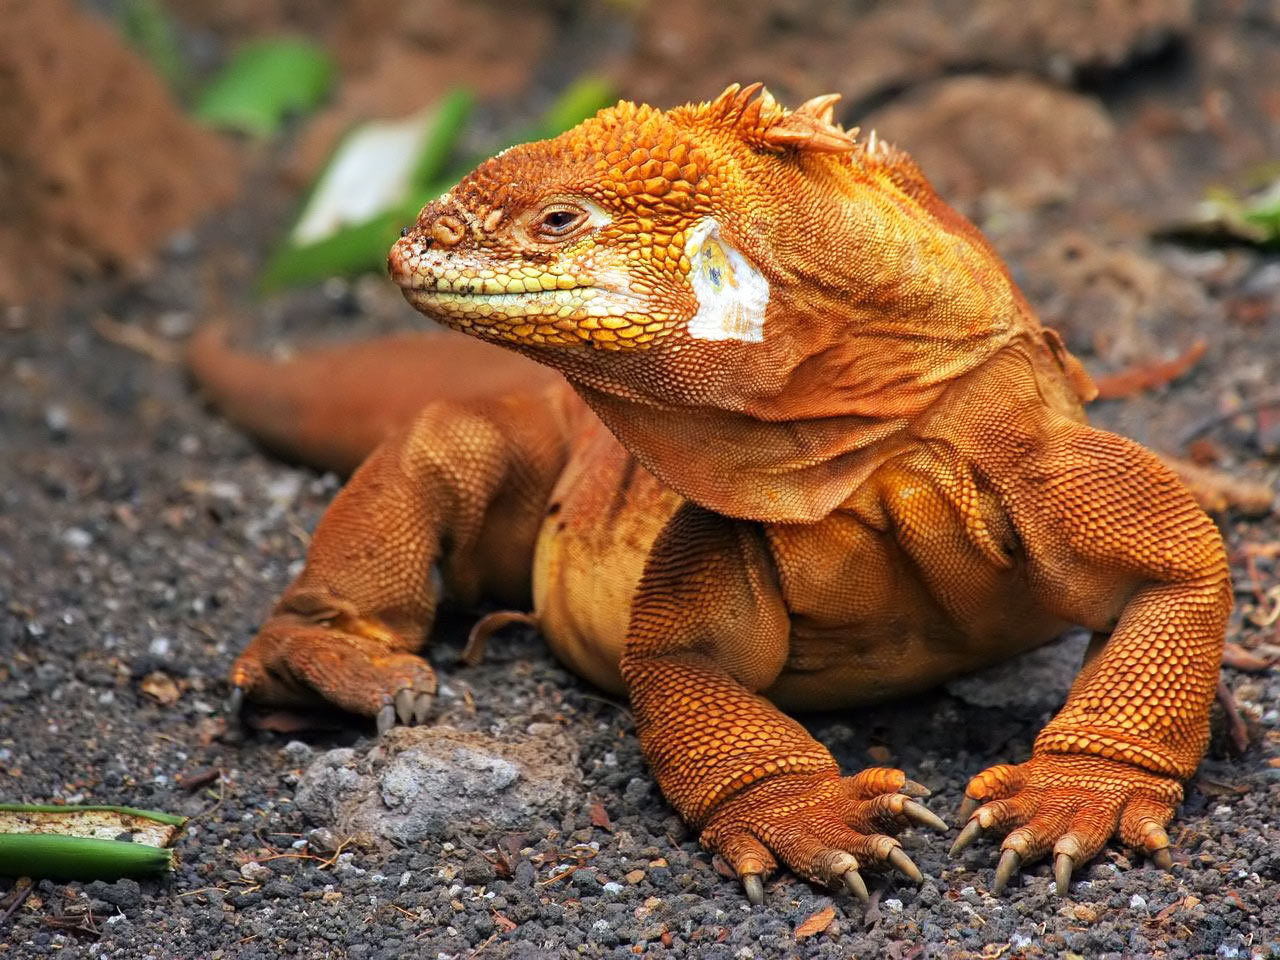 Reptiles iguana HD Wallpaper